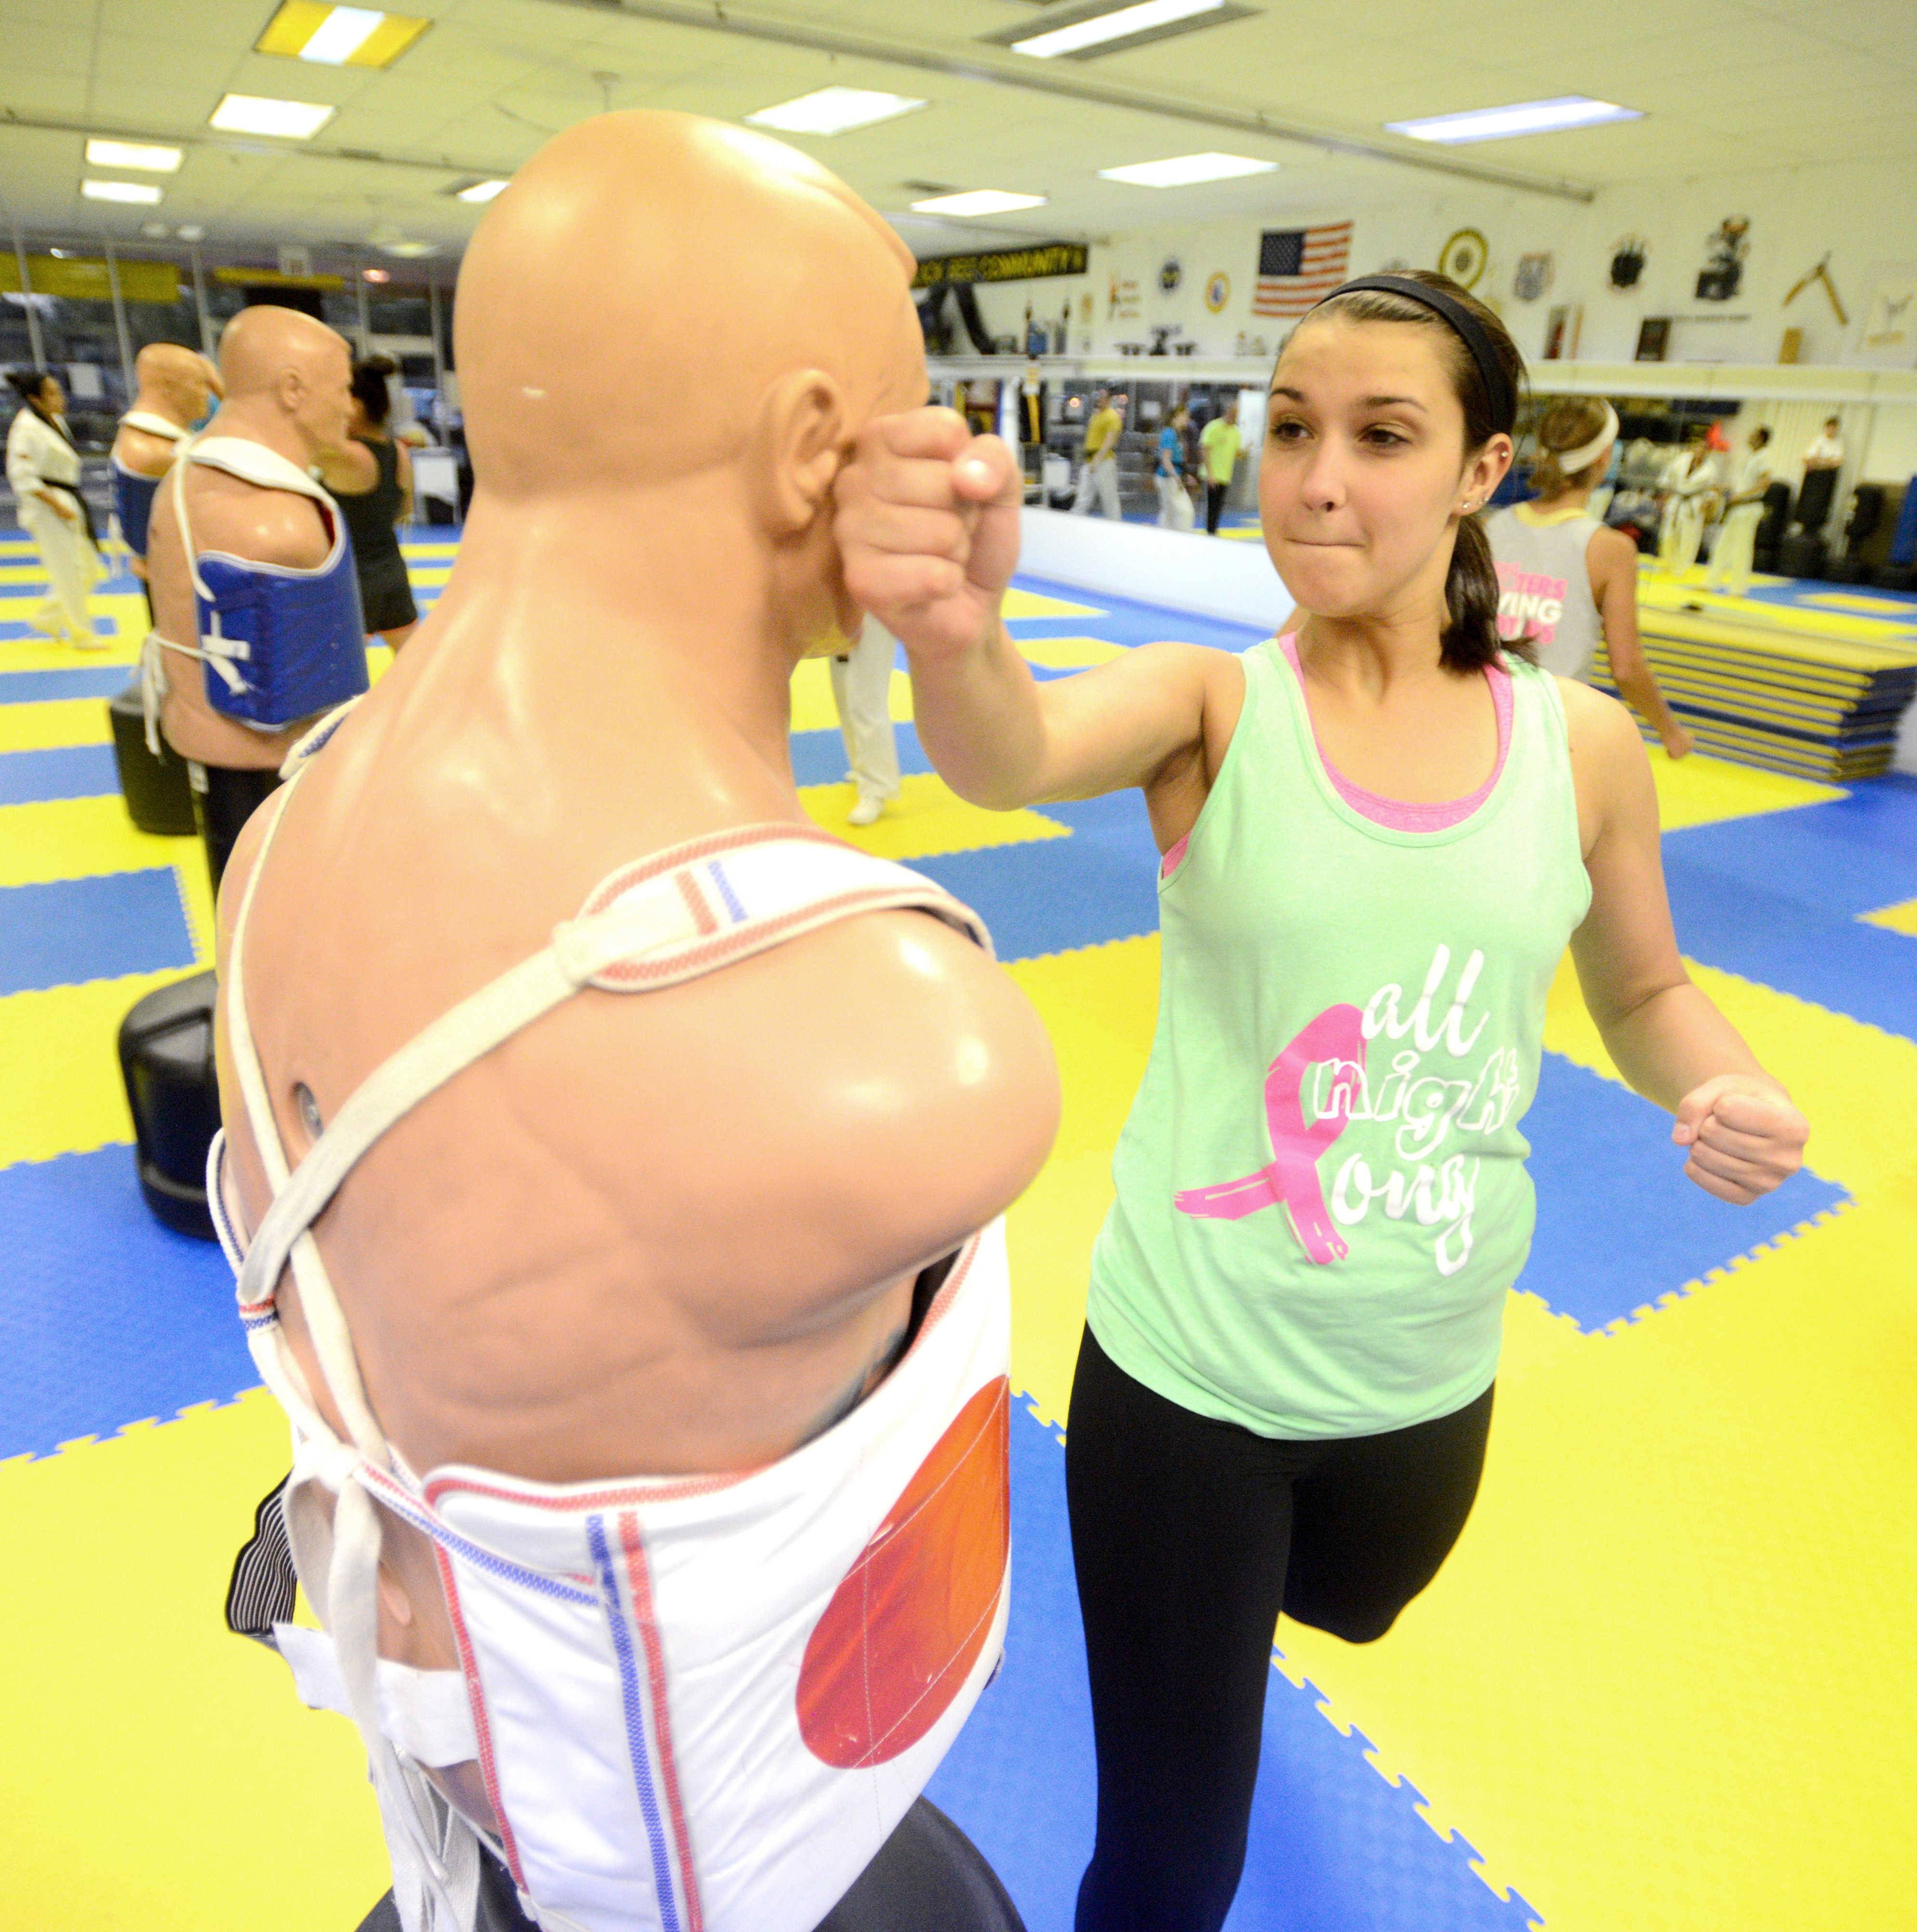 Shannon Wittel of Palatine practices a backhand punch during a women's self-defense class at J.P. Wood Martial Arts America in Palatine.